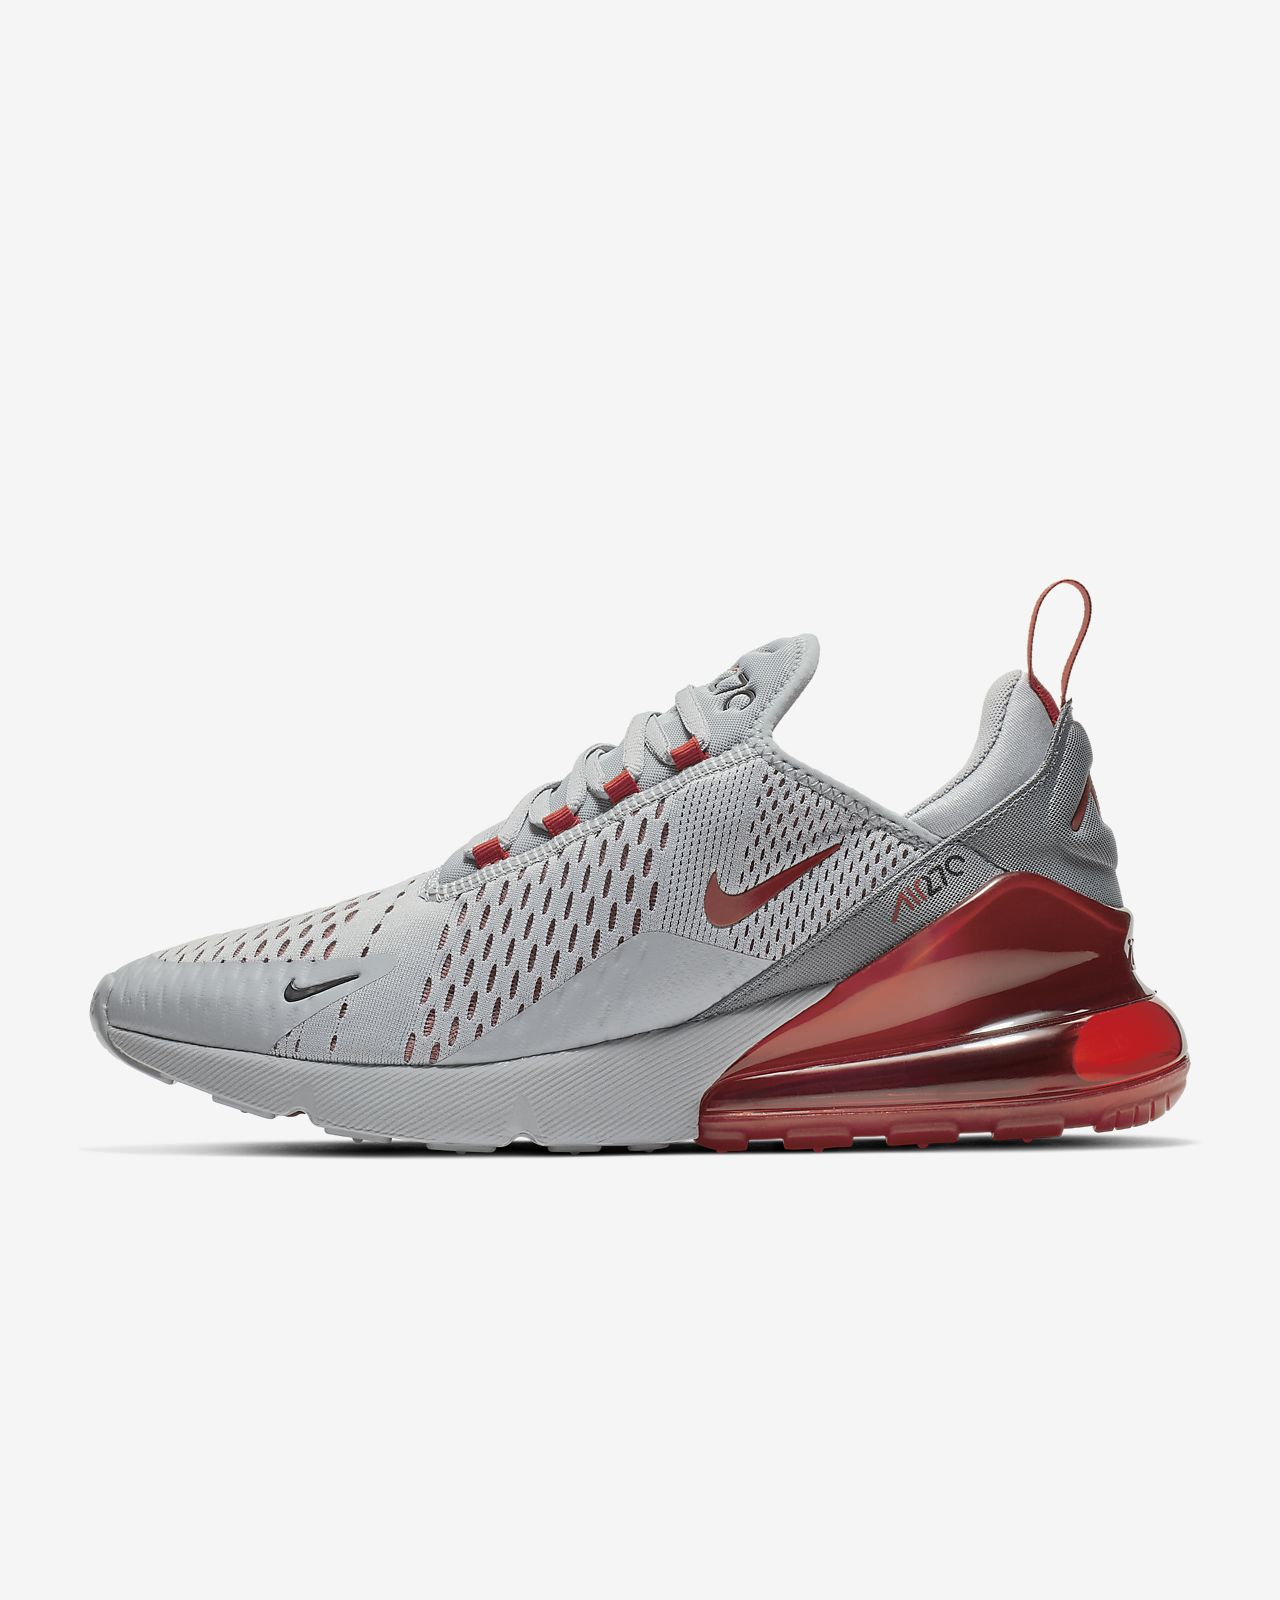 meet d7154 3c9c3 Men s Shoe. Nike Air Max 270